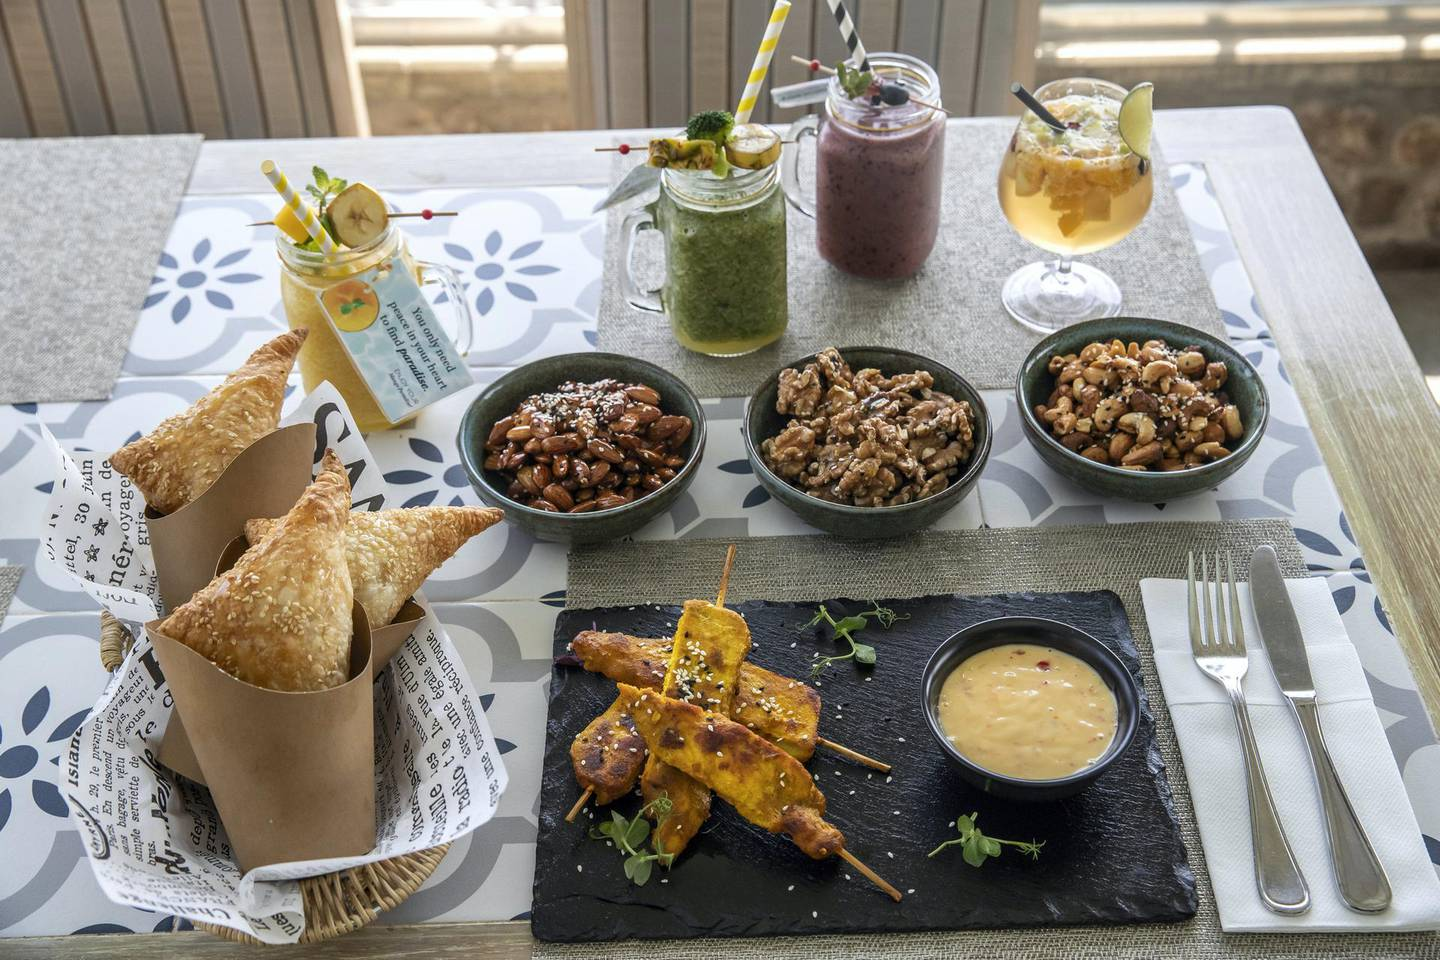 DUBAI, UNITED ARAB EMIRATES. 06 OCTOBER 2020. JA Hatta Fort Hotel has launched a collaboration with the Hatta Honey Bee Discovery Centre to use theyr products in the Food and Beverage menu of the hotel. Menu items at the Hotel. Feta and Honey puff pastry, glazed nuts, honey glazed chicken Satay with Japanese Mayo and lemon grass along with the juices, Non Alcoholic Sangria, Rassberry Love, Green Machine and Mango Paradise. (Photo: Antonie Robertson/The National) Journalist: janice Rodriguez. Section: Arts & Life.